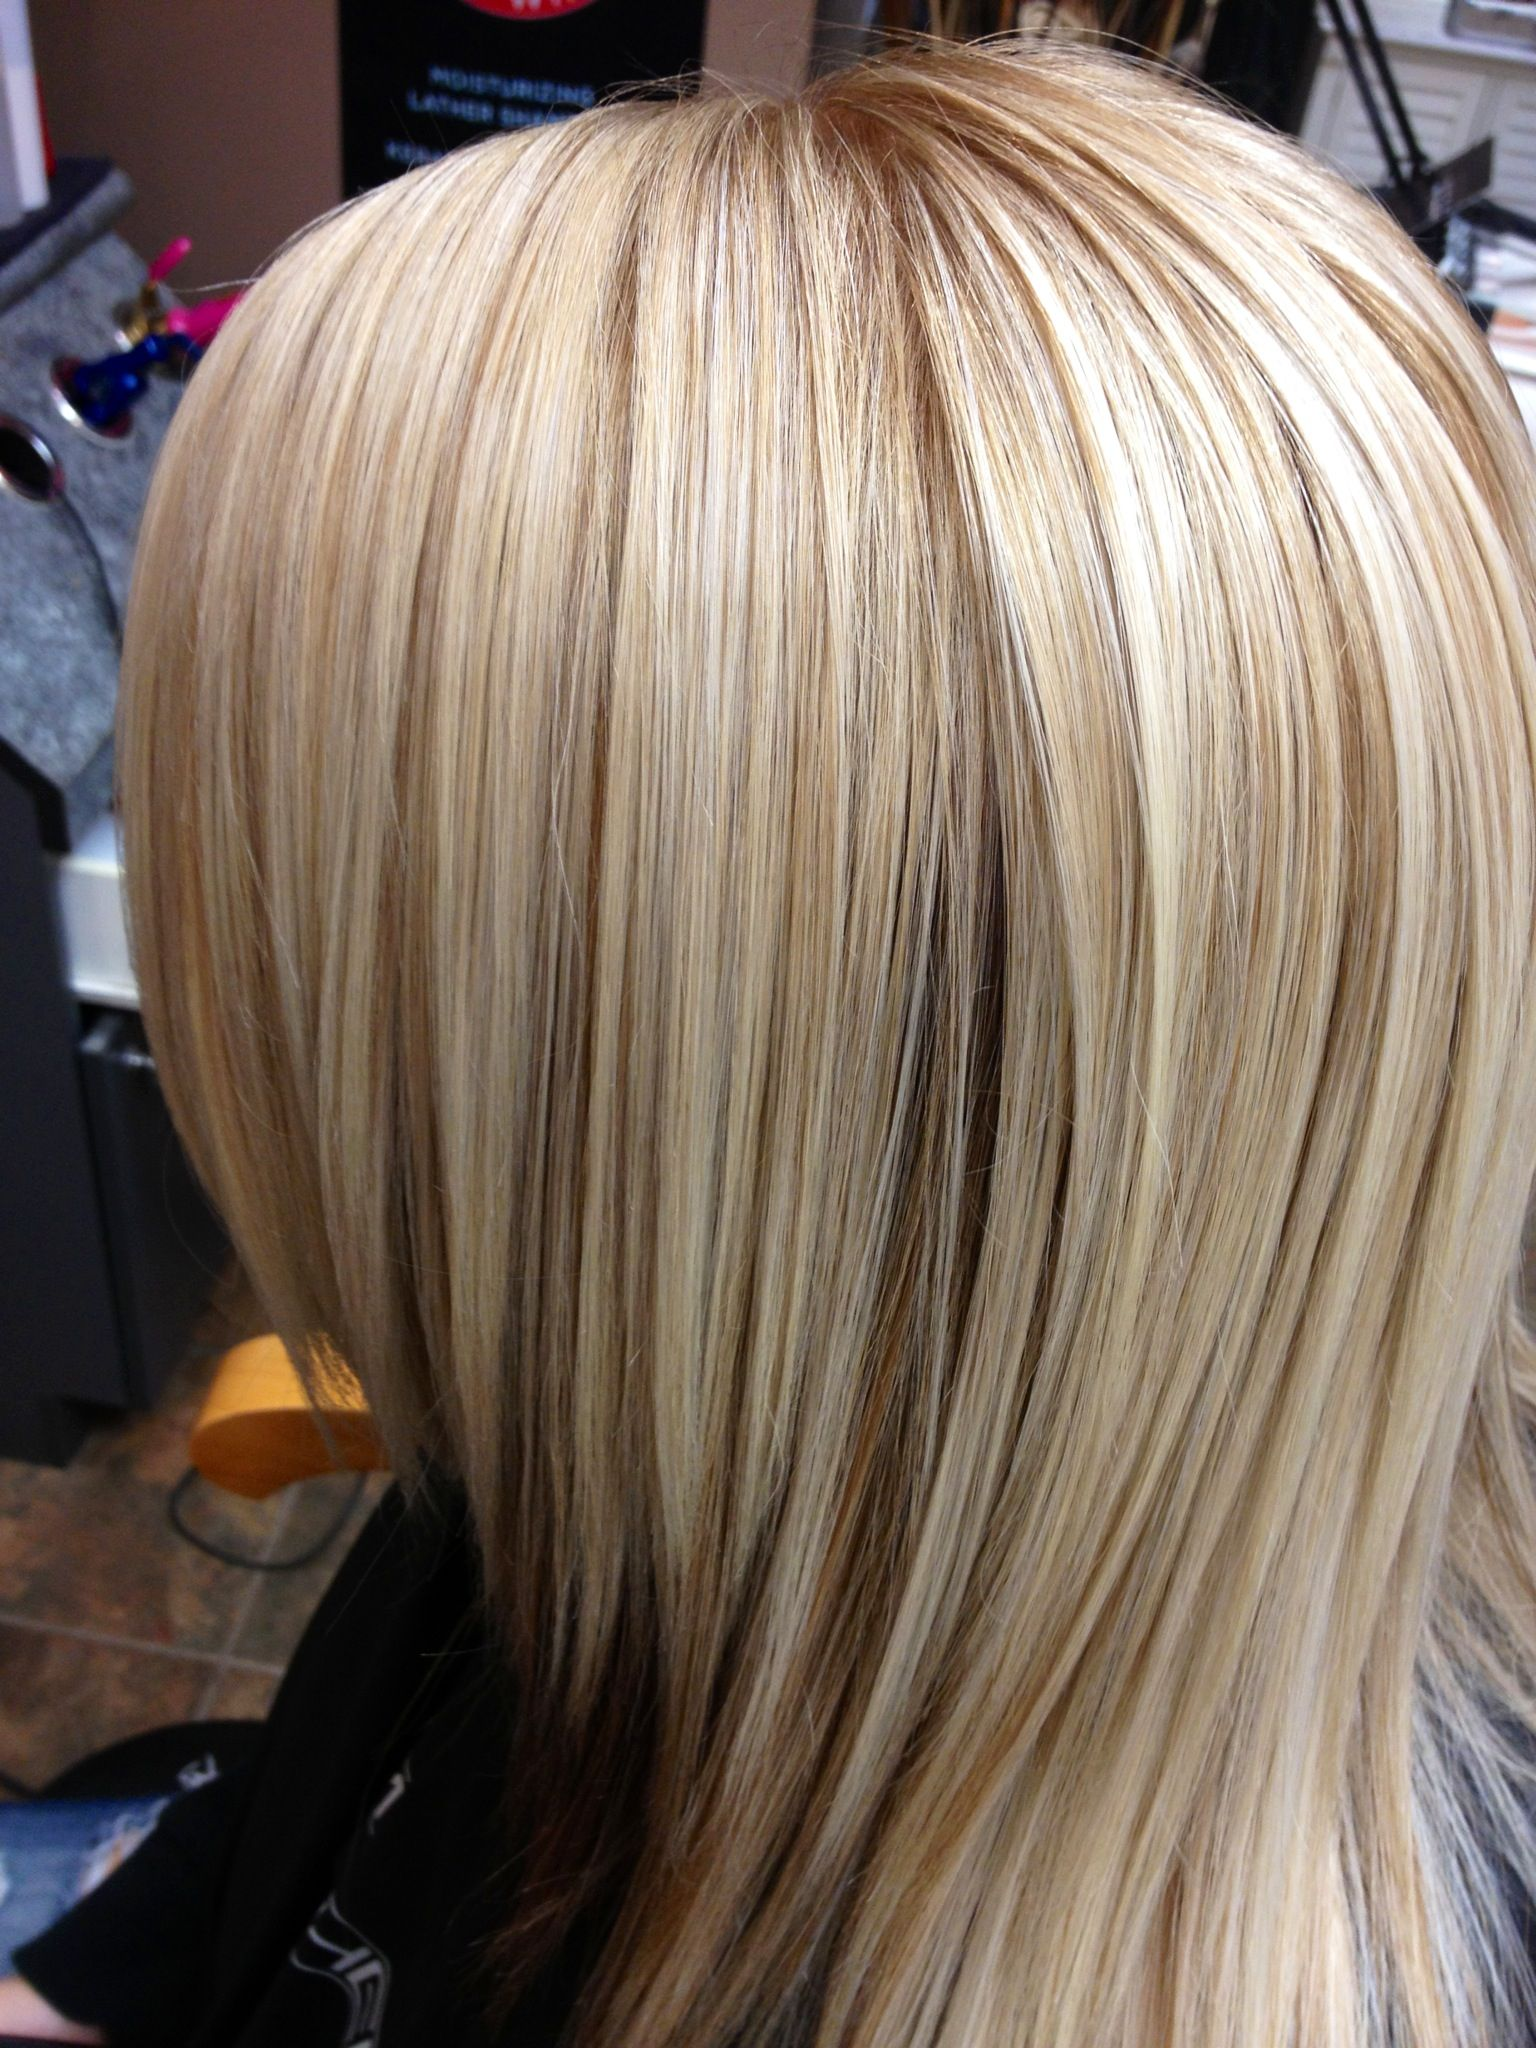 Multi Blonde Hair Color I Want This Color But Thicker Low Light